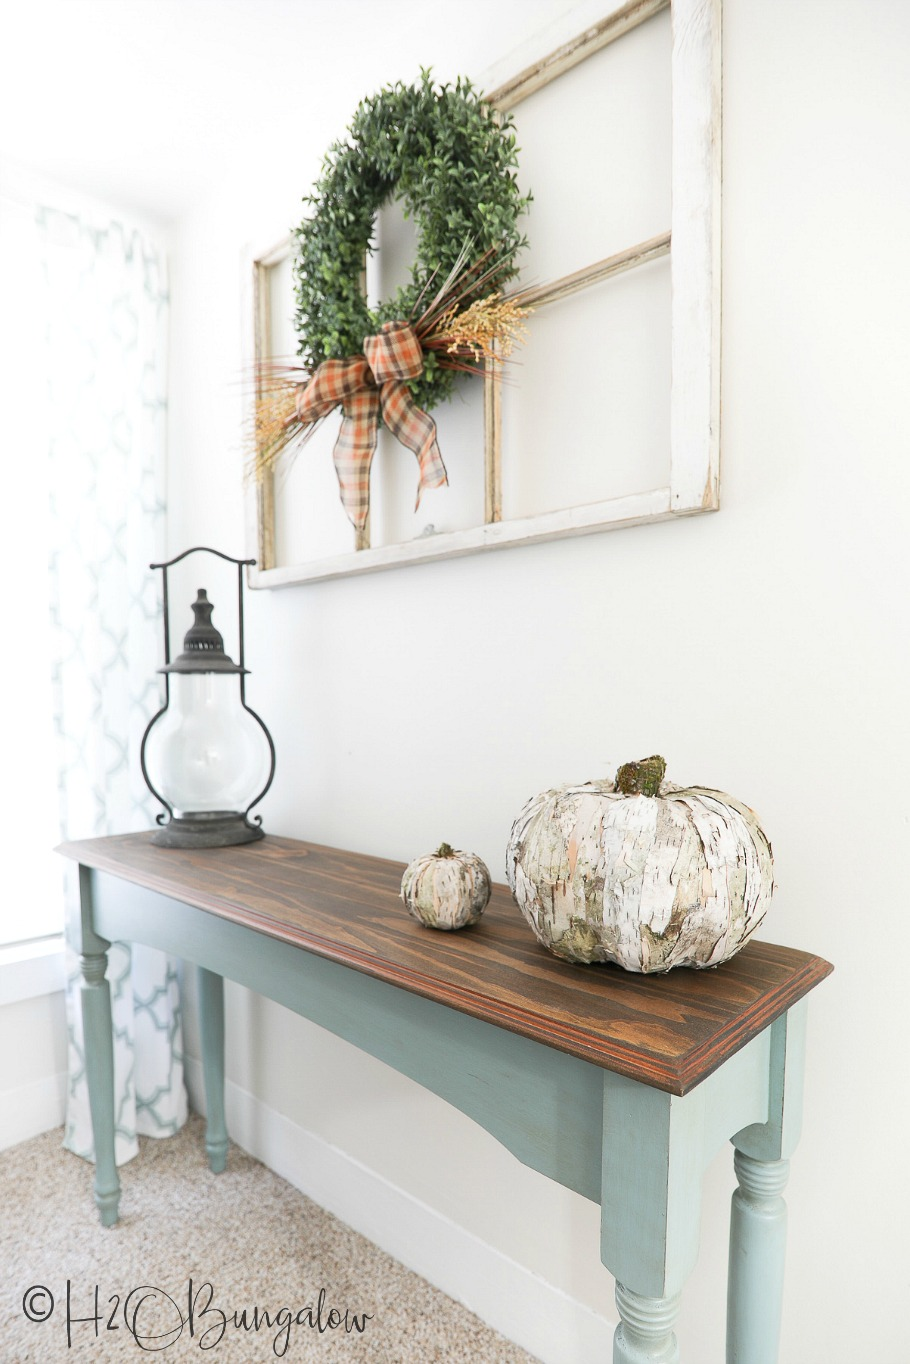 DIY birch bark pumpkin video and tutorial to make a trendy fall home decor item out of birch bark. I share how where to get birch bark and alternatives to using real bark too.